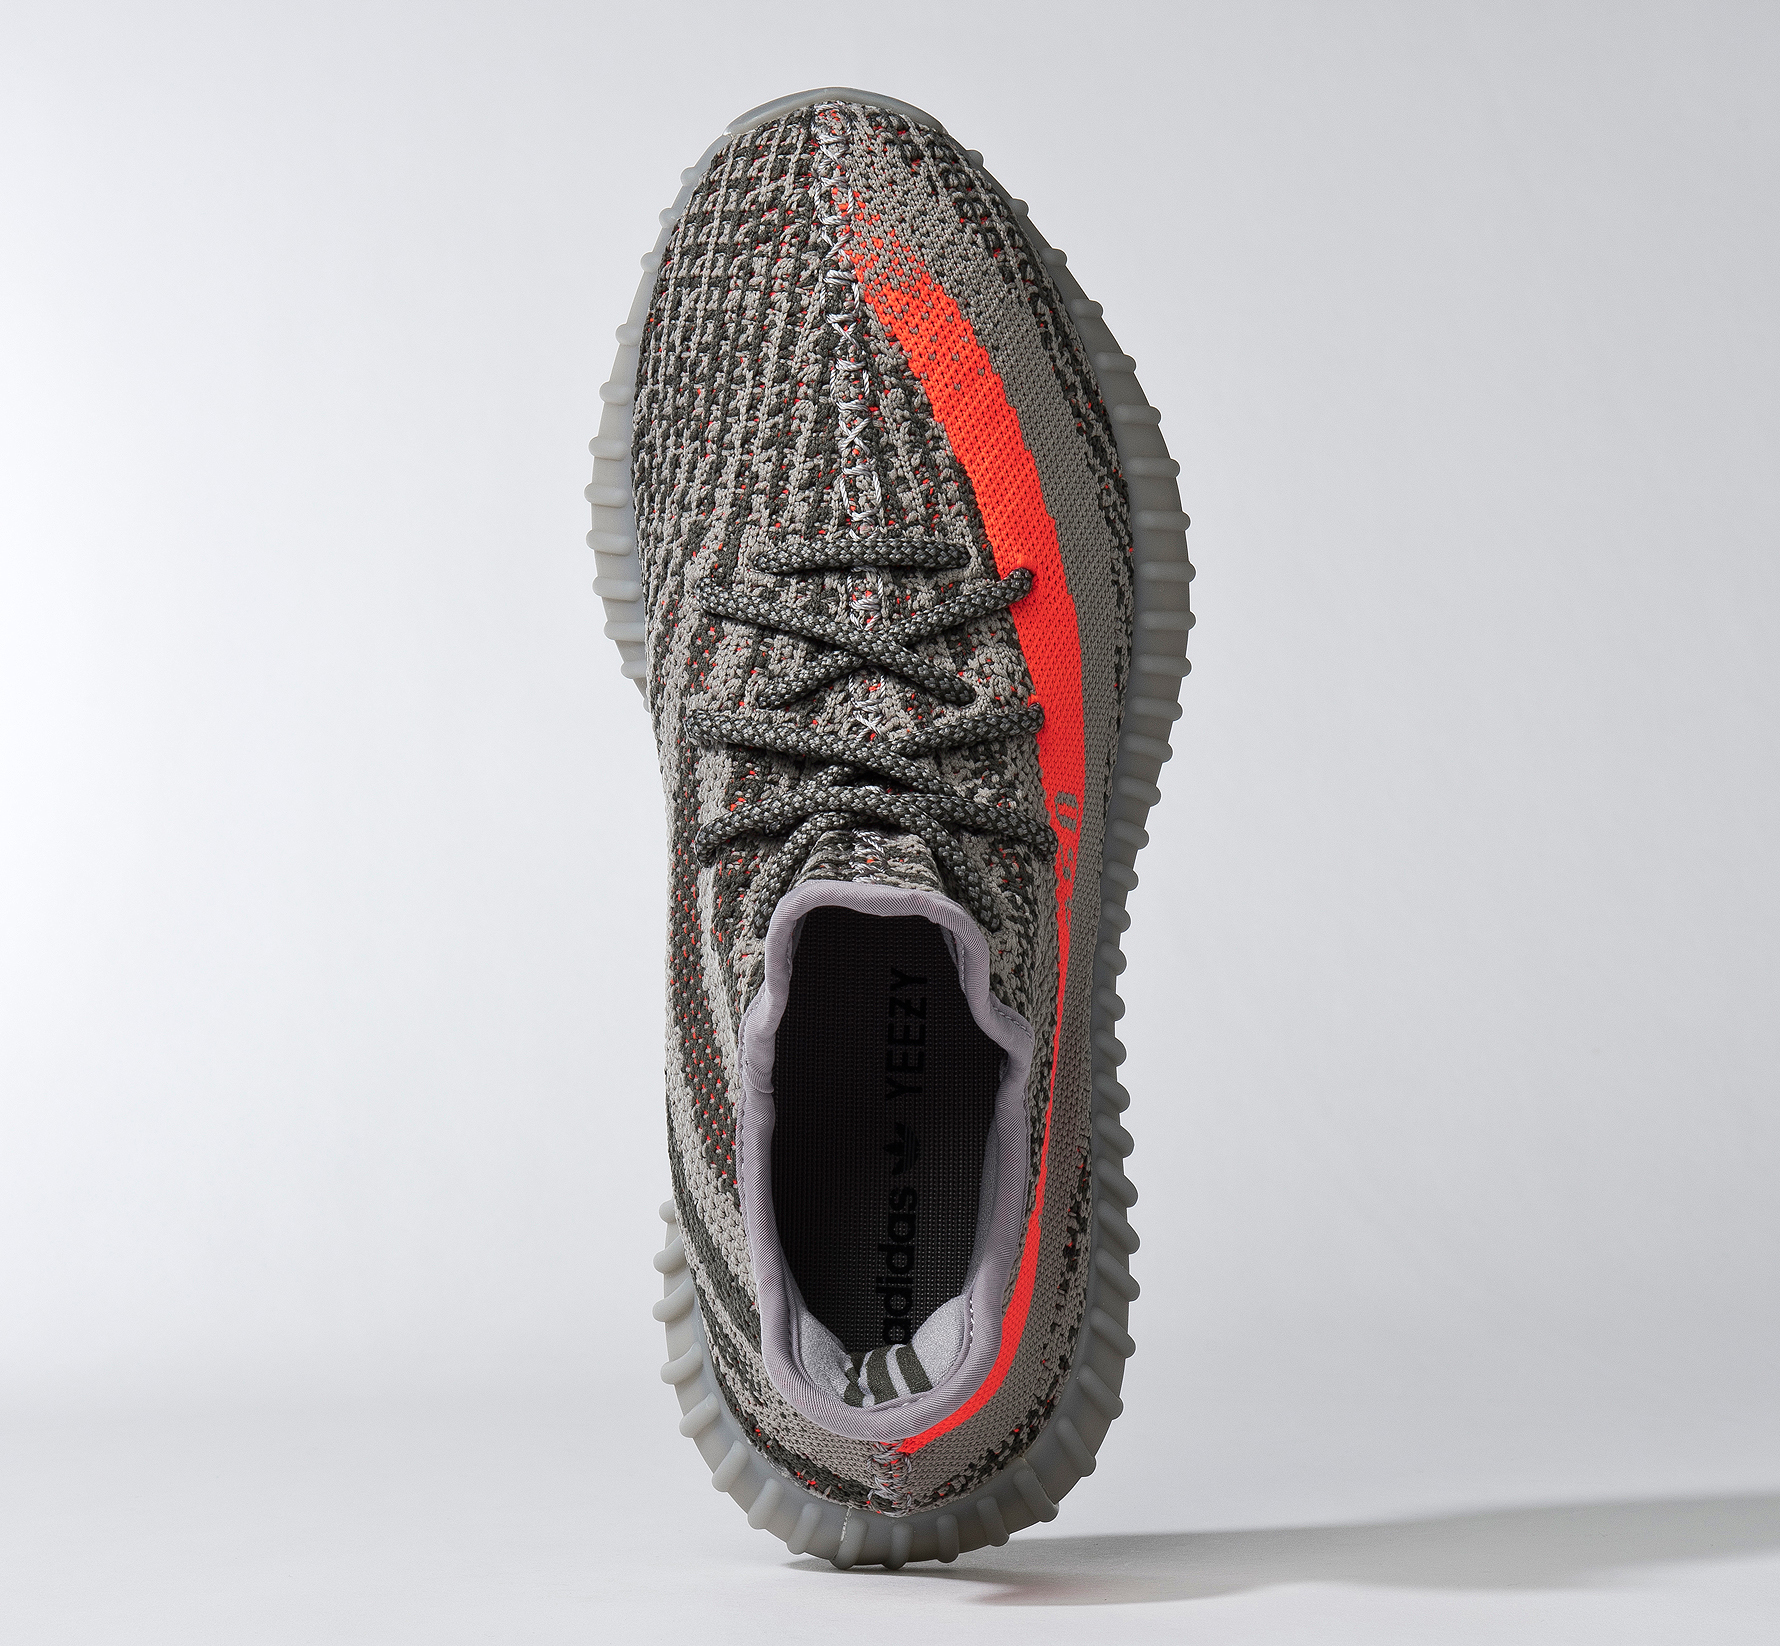 Wave' adidas Yeezy 350 Boost 'Sea Wave' privately developed AQ 266 1 36 39 _